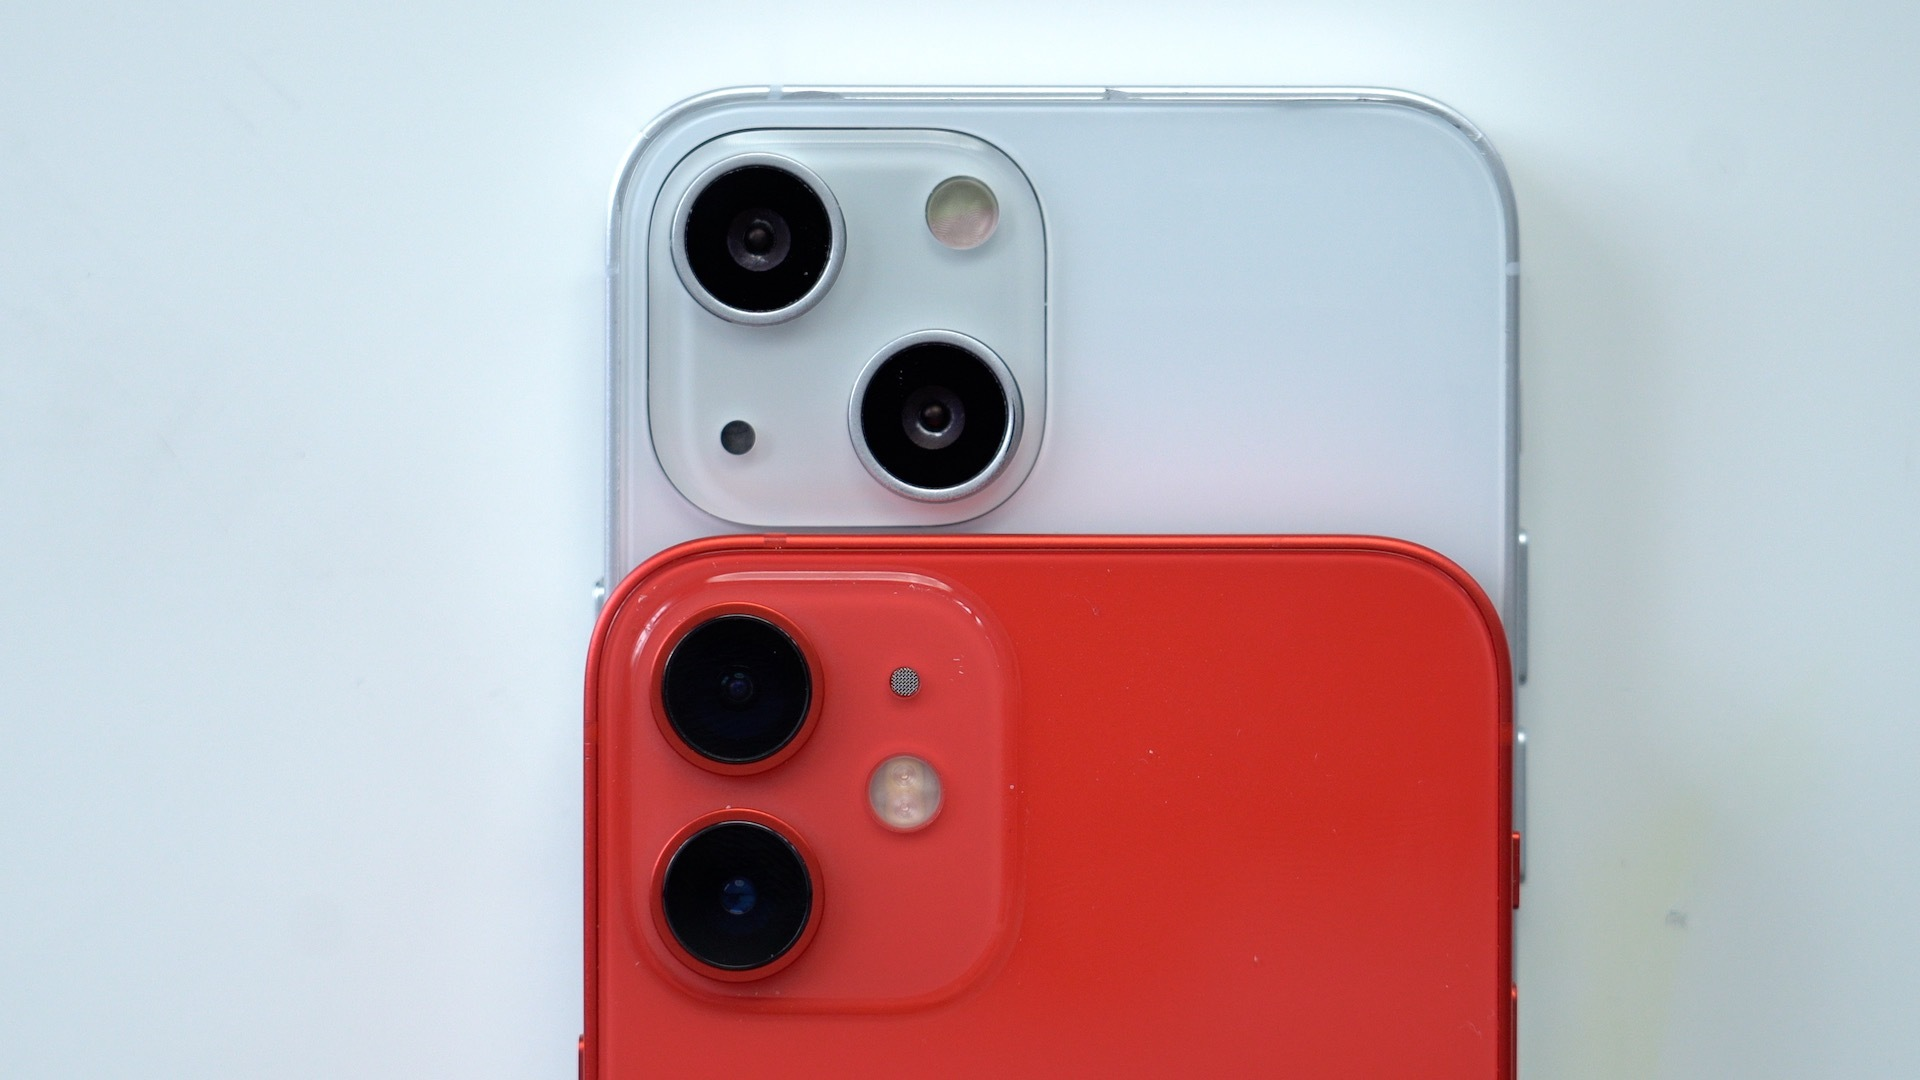 iphone 12 iphone 13 compared